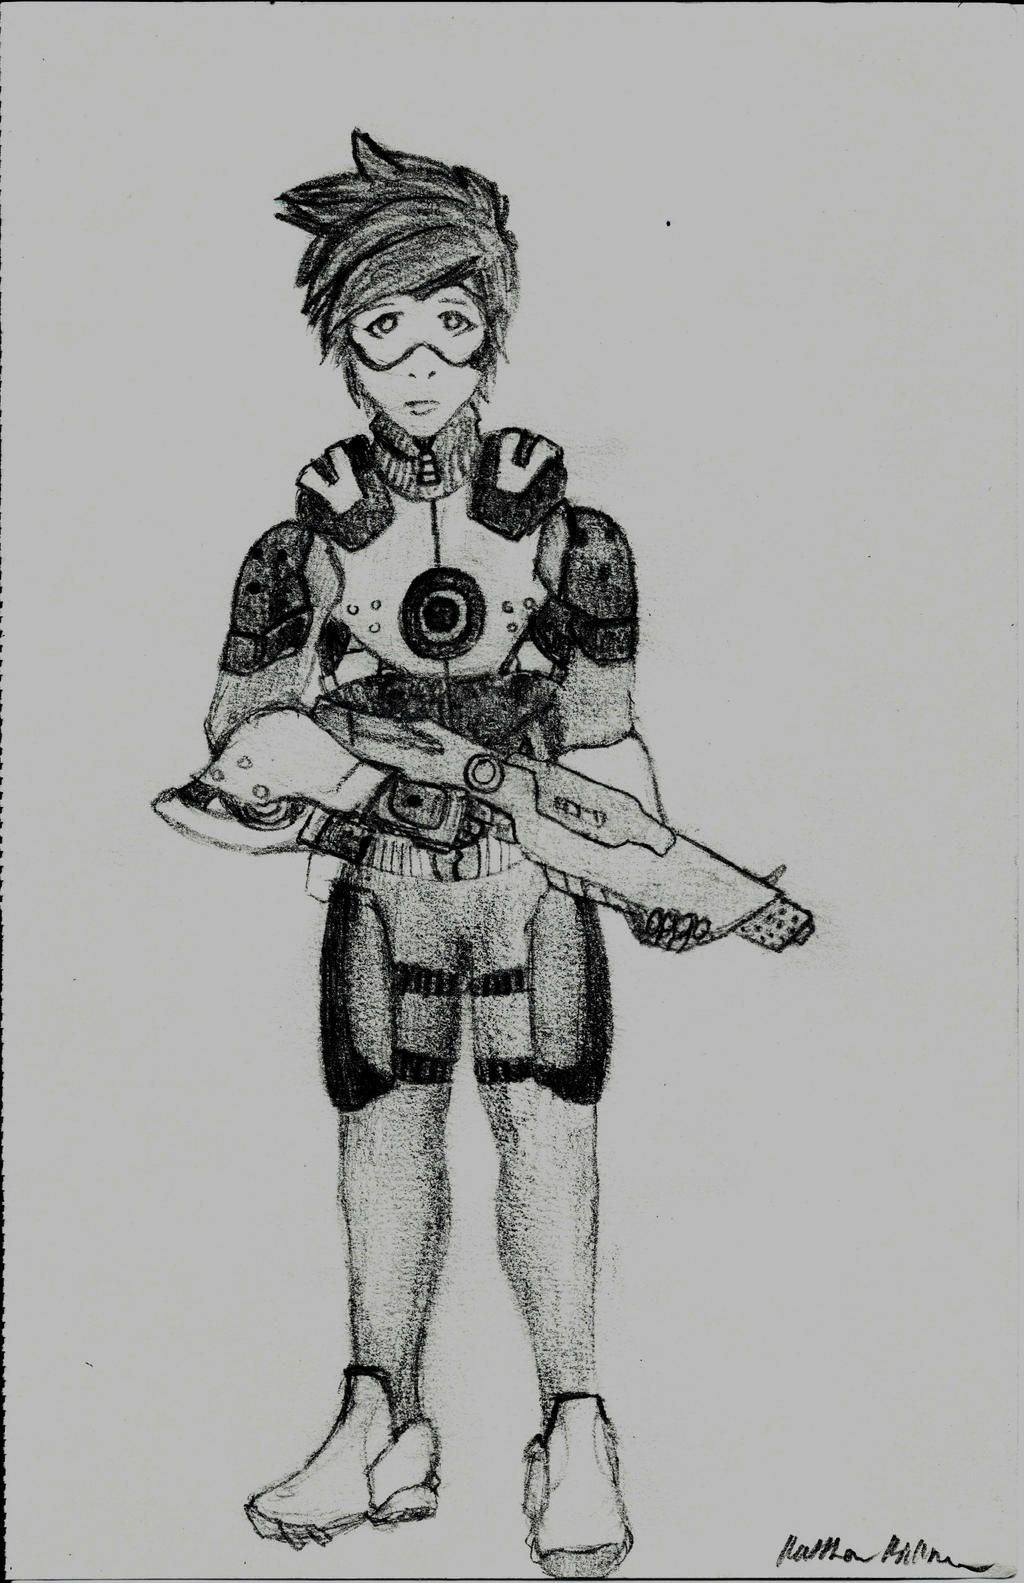 Overwatch - Combat Tracer by holmesian1891